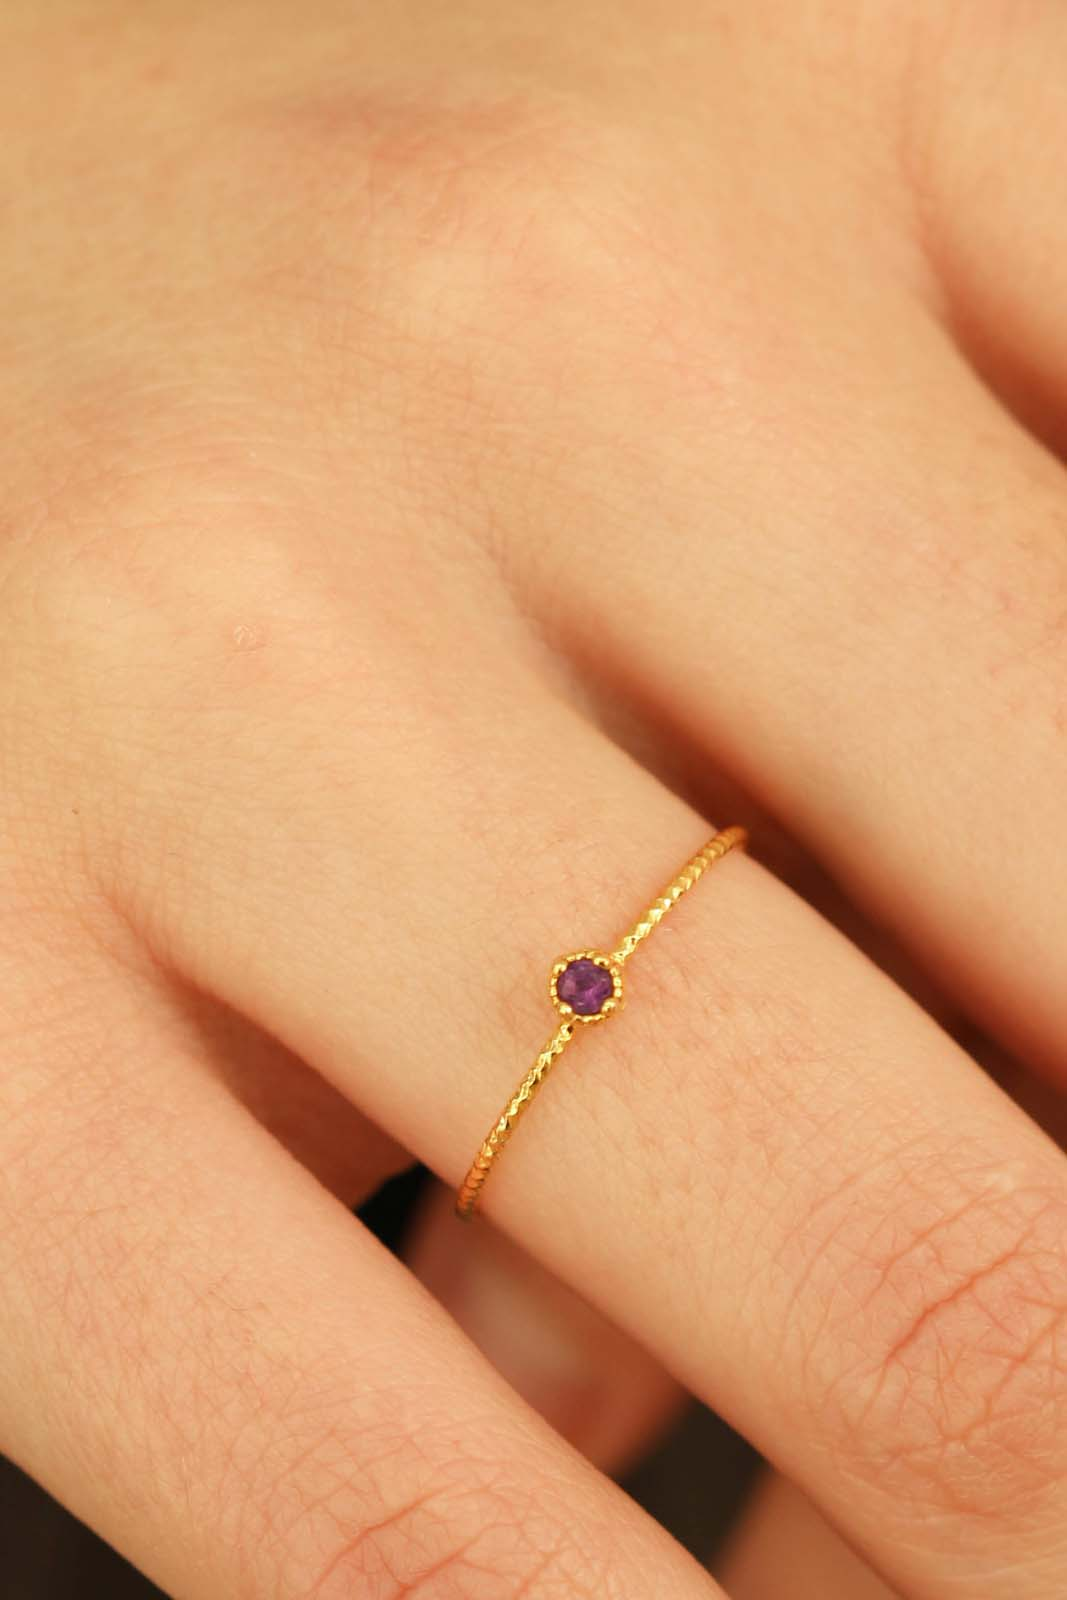 Gold genuine amethyst birthstone ring / Feb - purple1sx